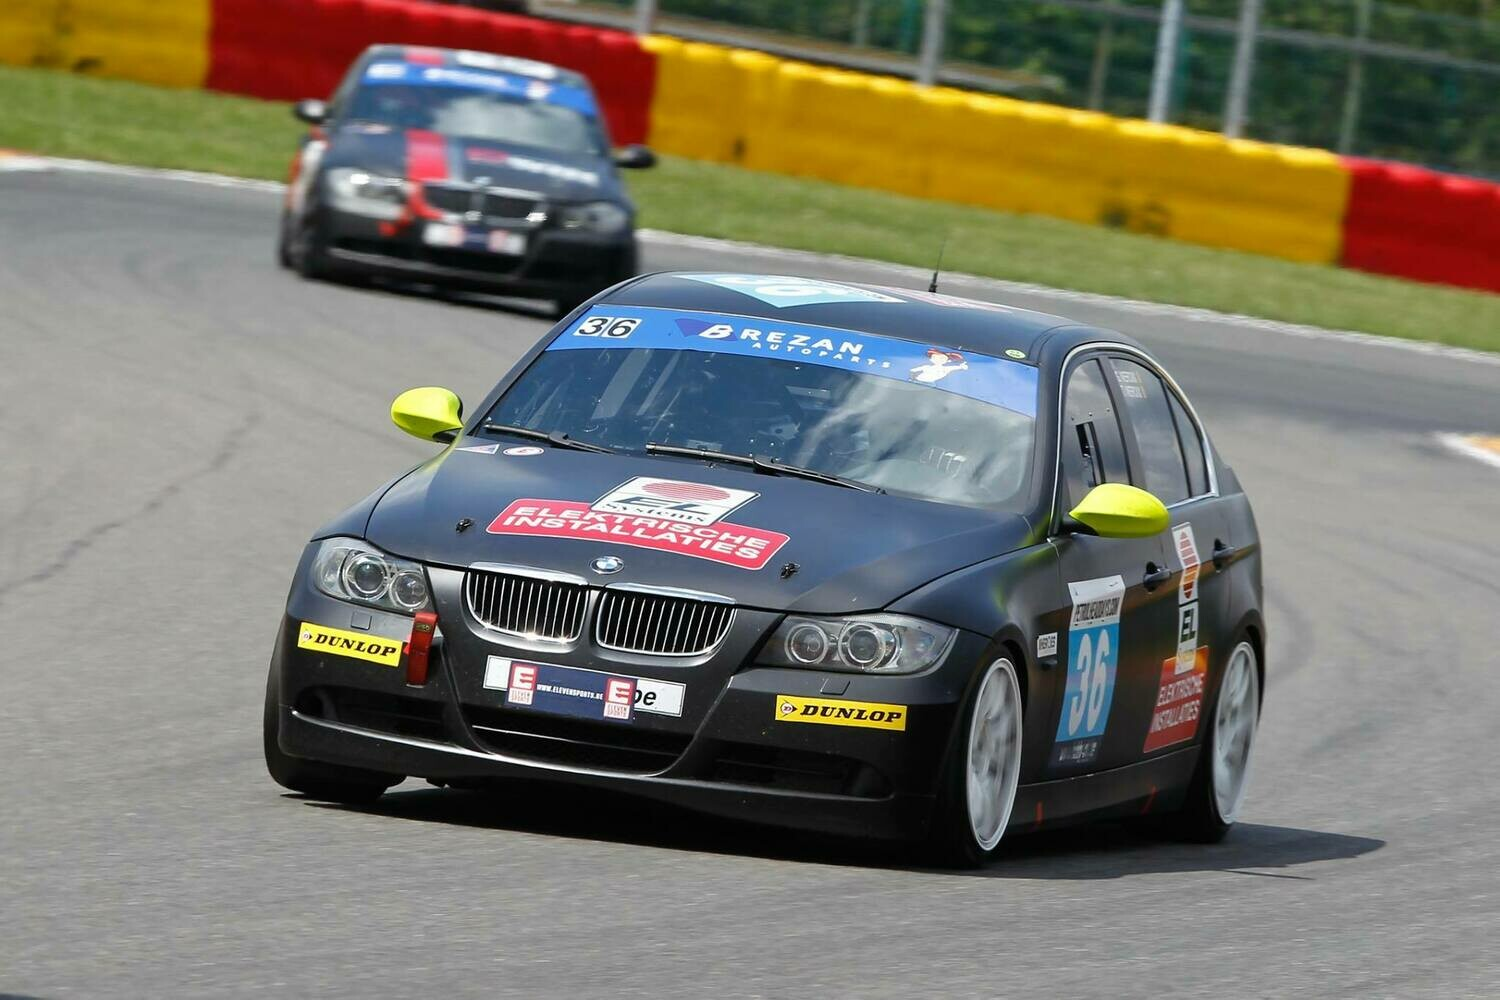 FULL DAY - Spa-Francorchamps - BMW 325i